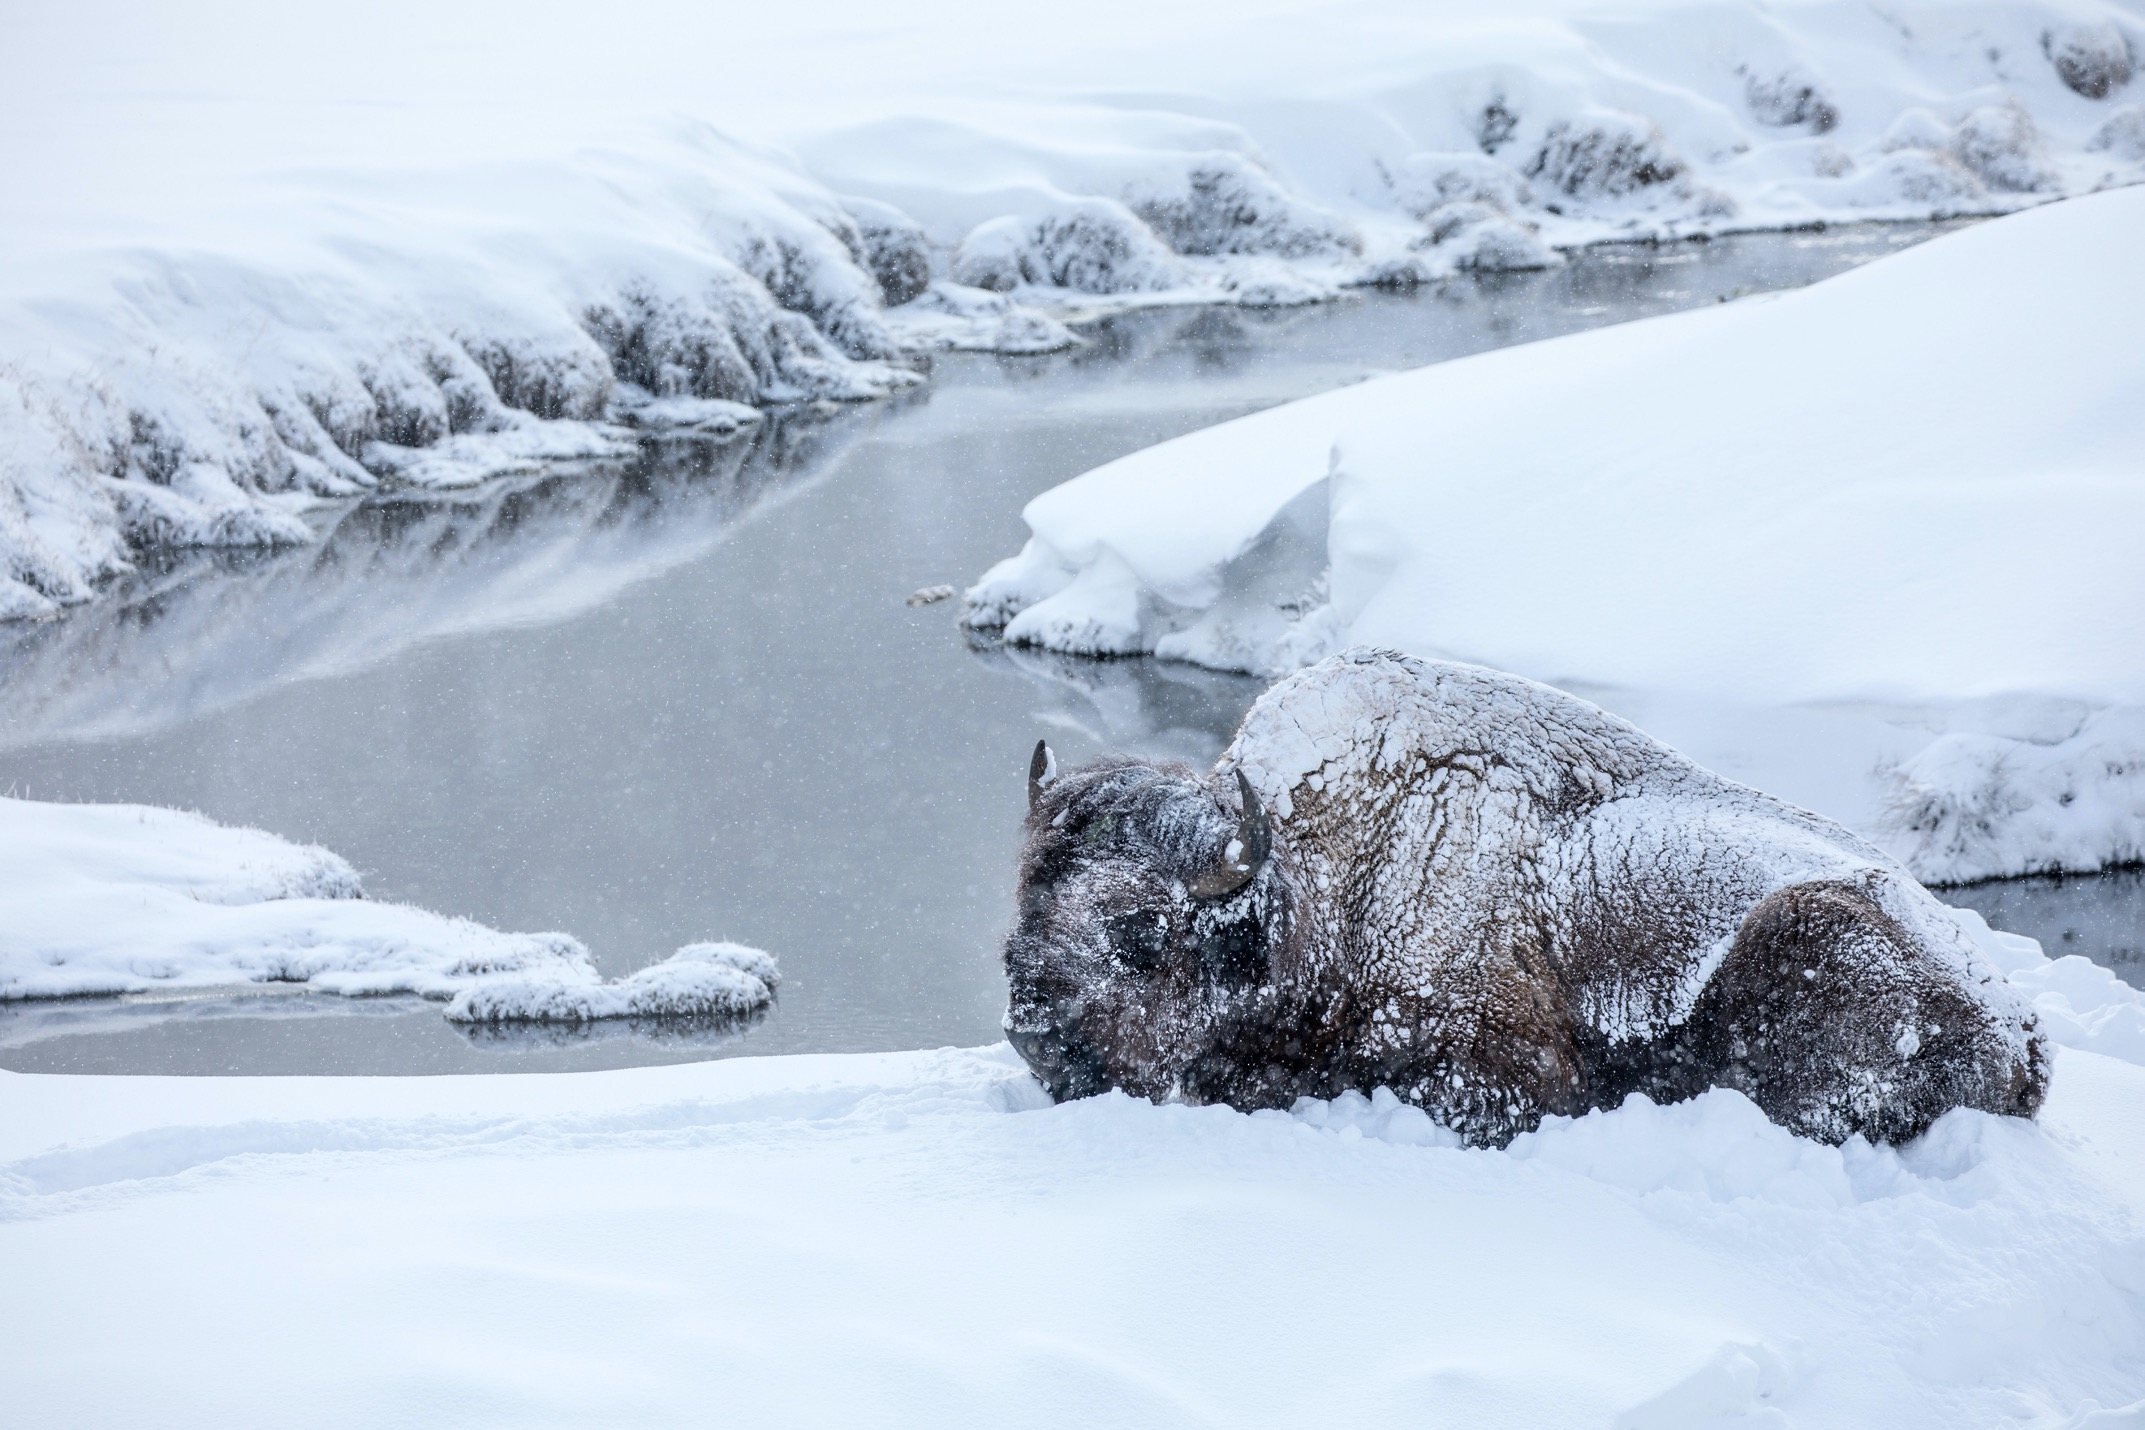 a bison is fully covered in snow and sitting down next to a small river